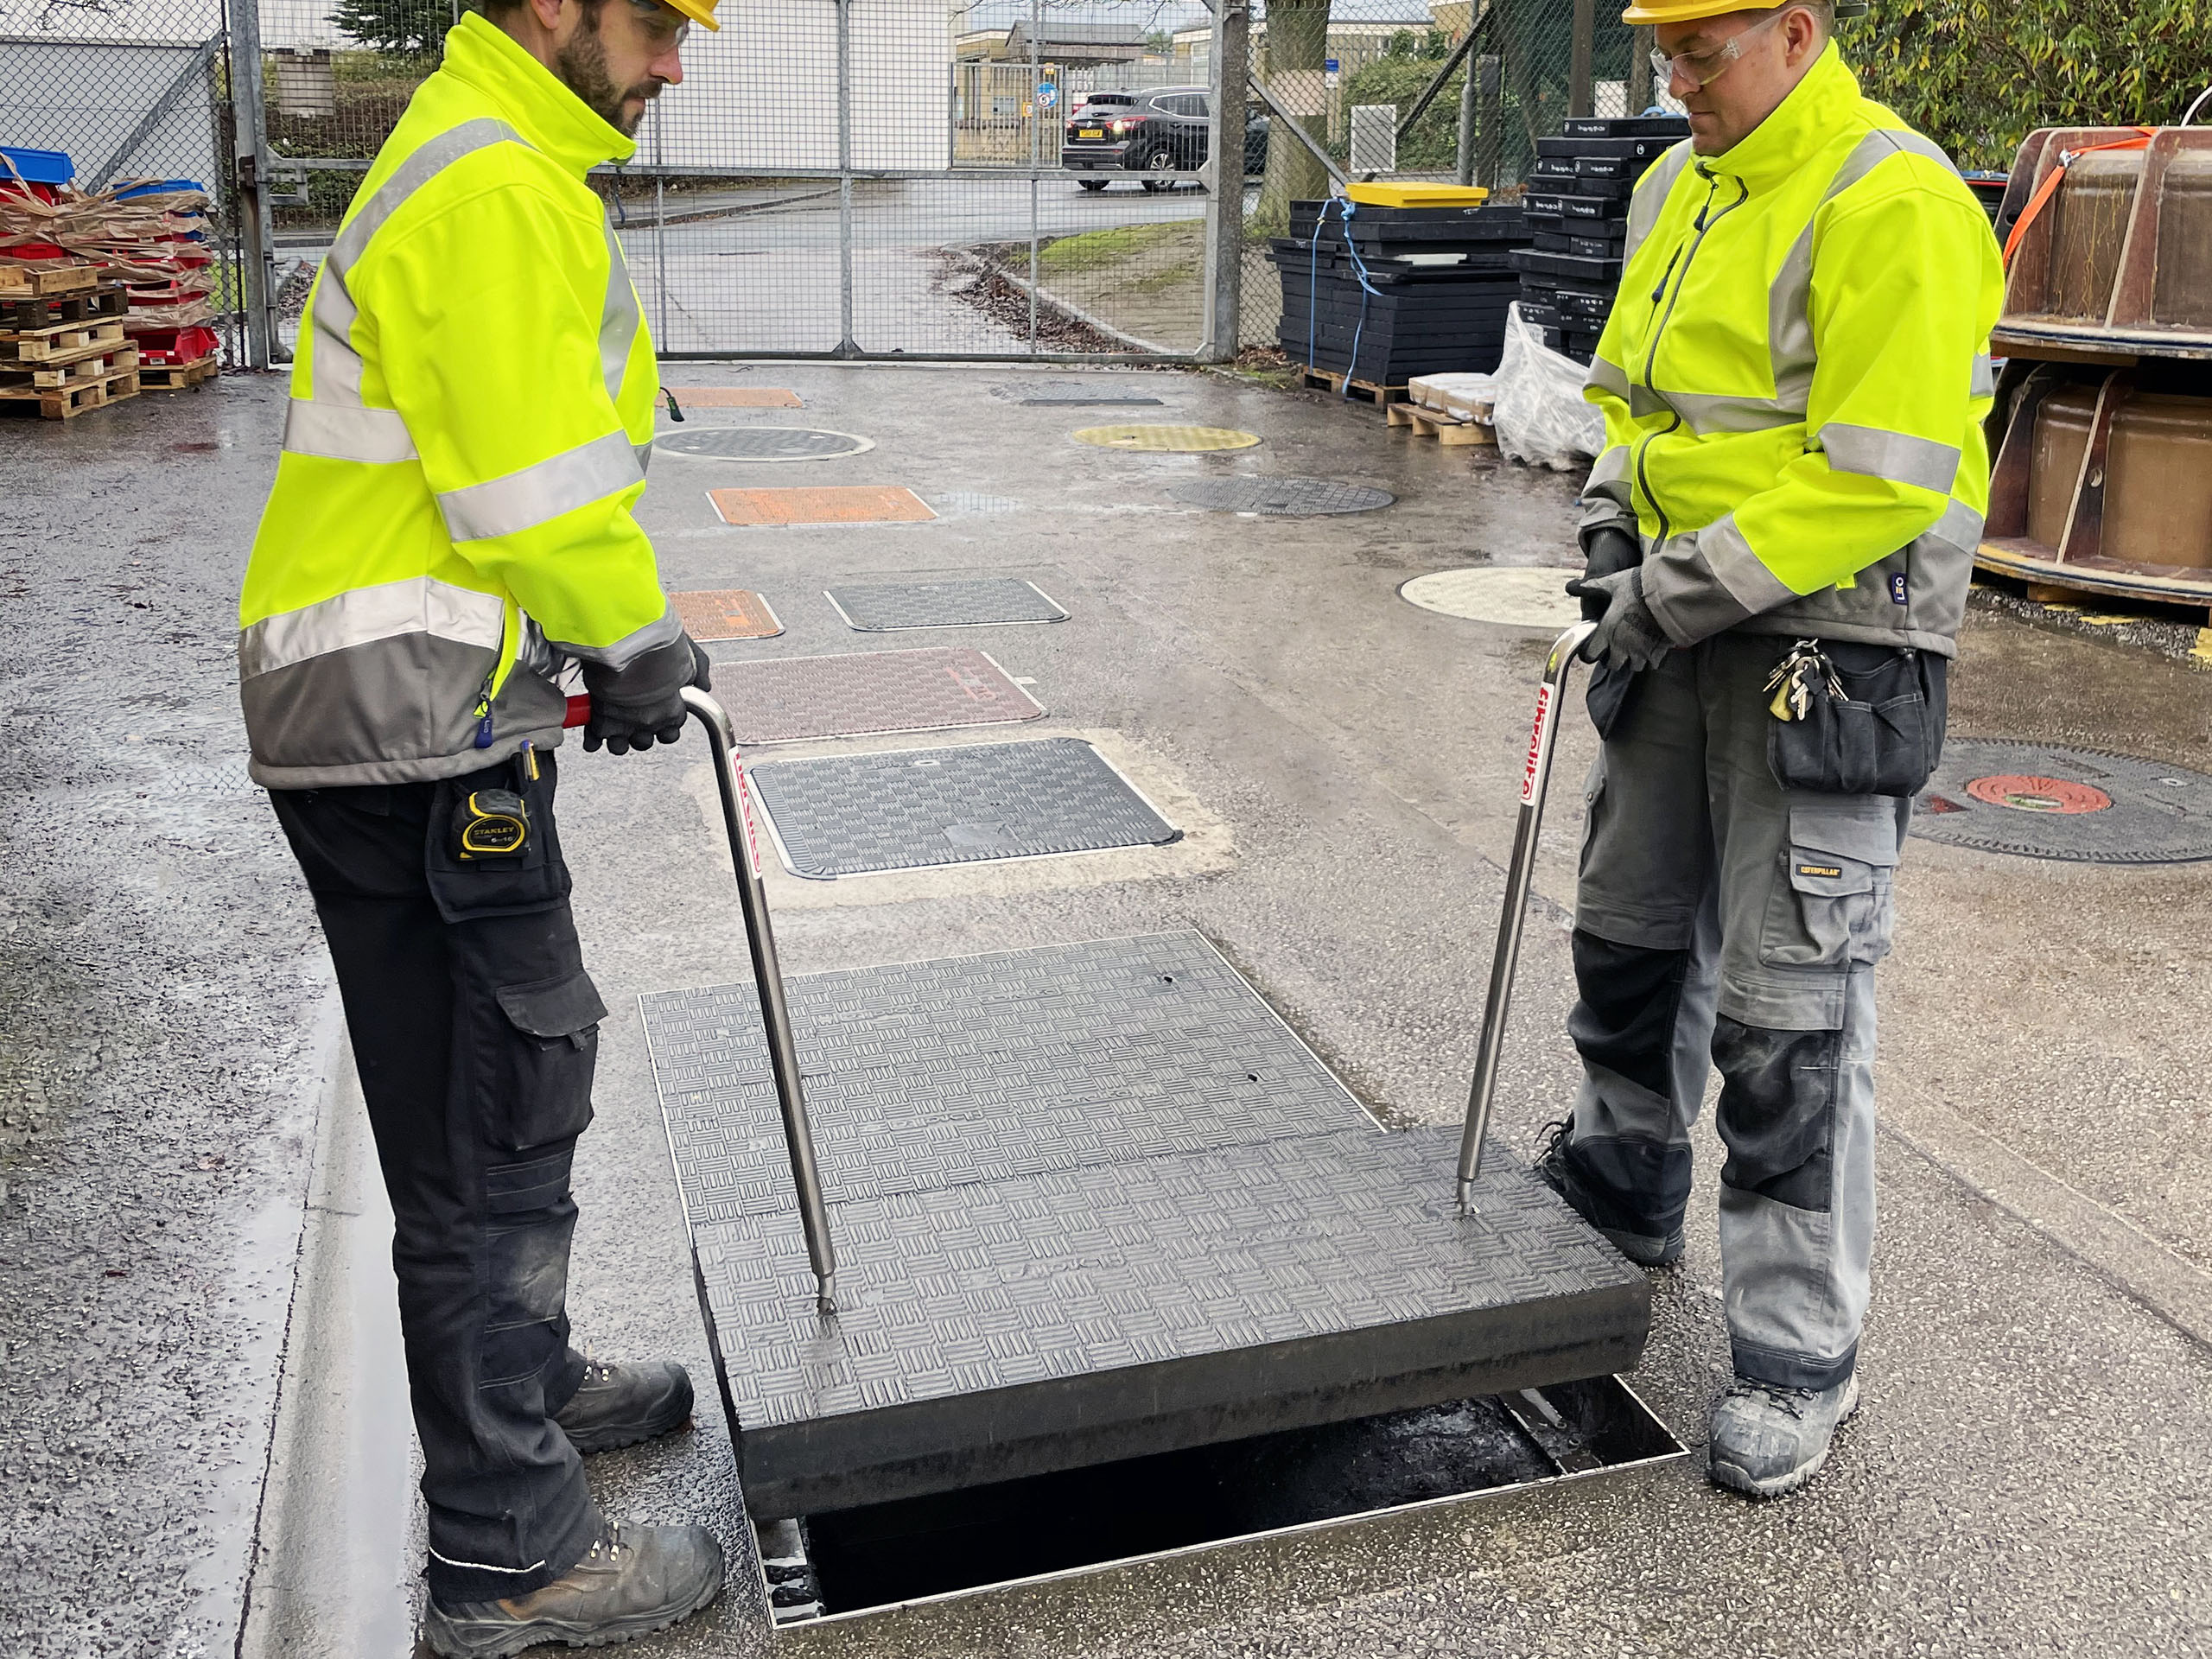 Fibrelite trough covers are designed to be safely and easily removed by two people